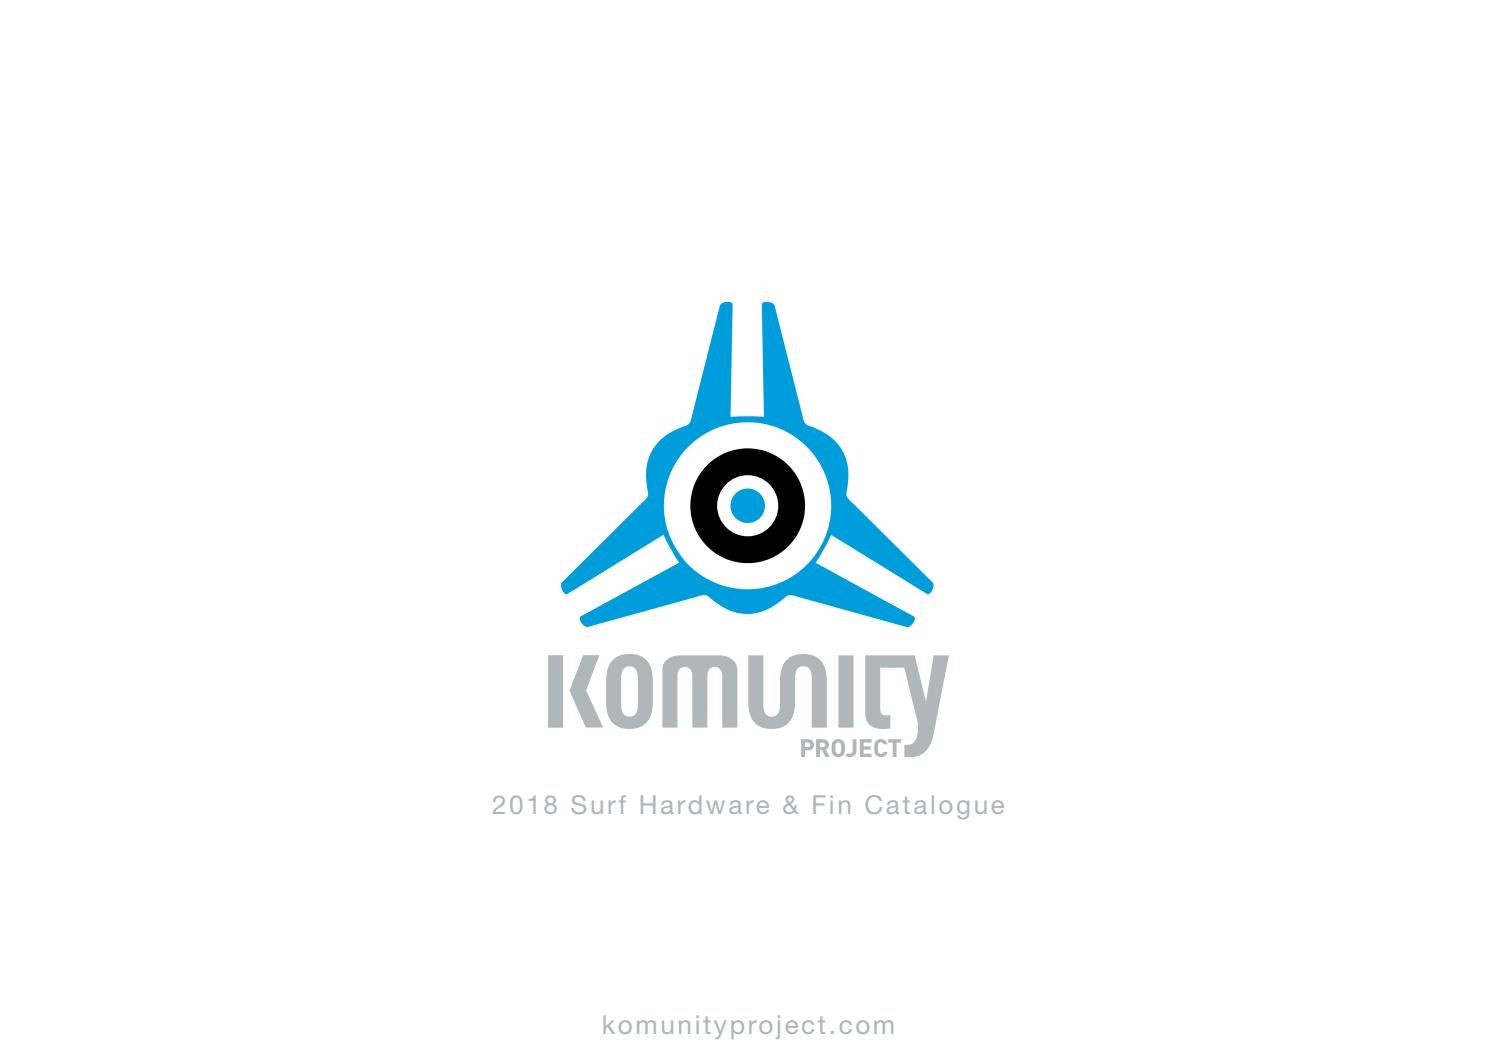 67fc5cc21765 Komunity Project Surf Hardware & Fins 2018 by Komunity Project - issuu